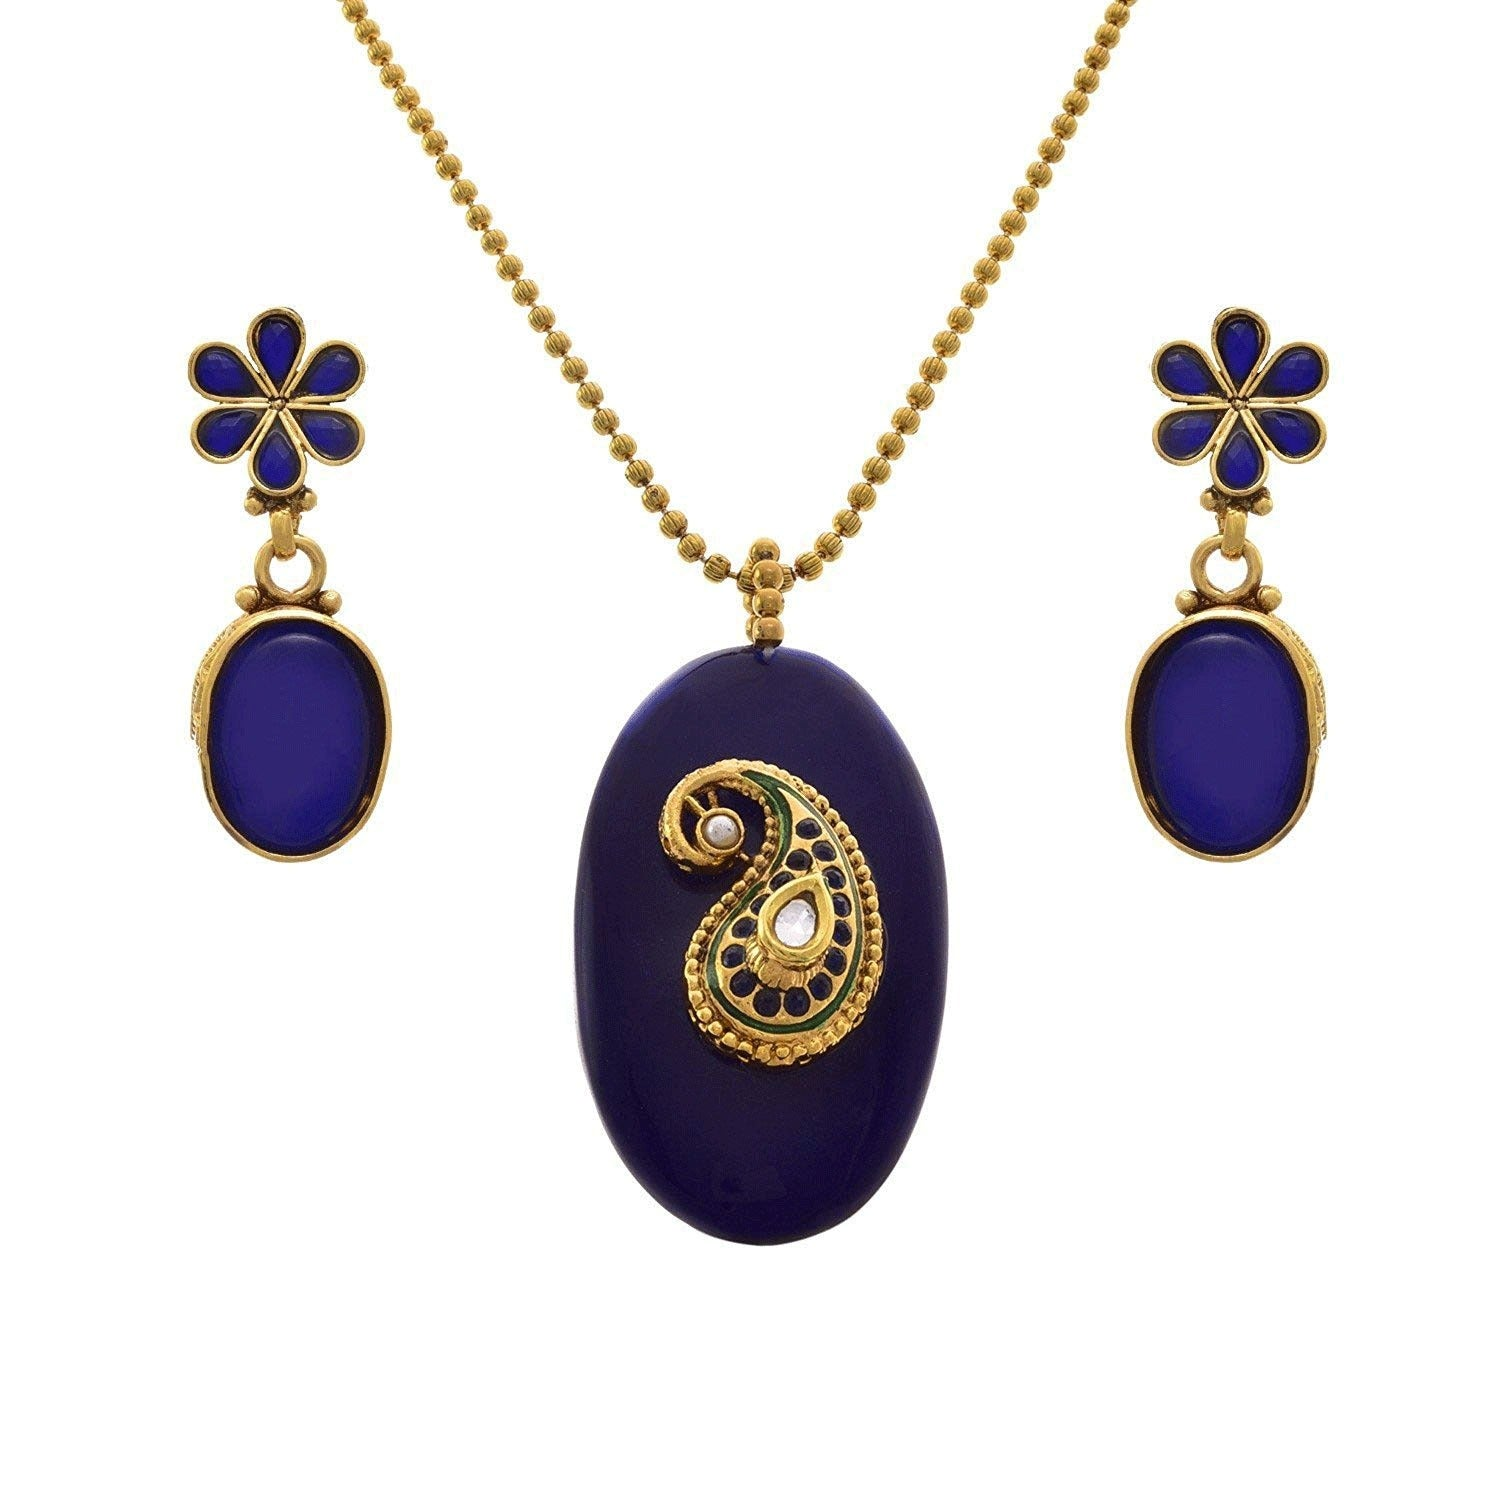 JFL- Karismatic Kaerie Designer One Gram Gold Plated Kundan Designer Pendant Set for Girl and Women.